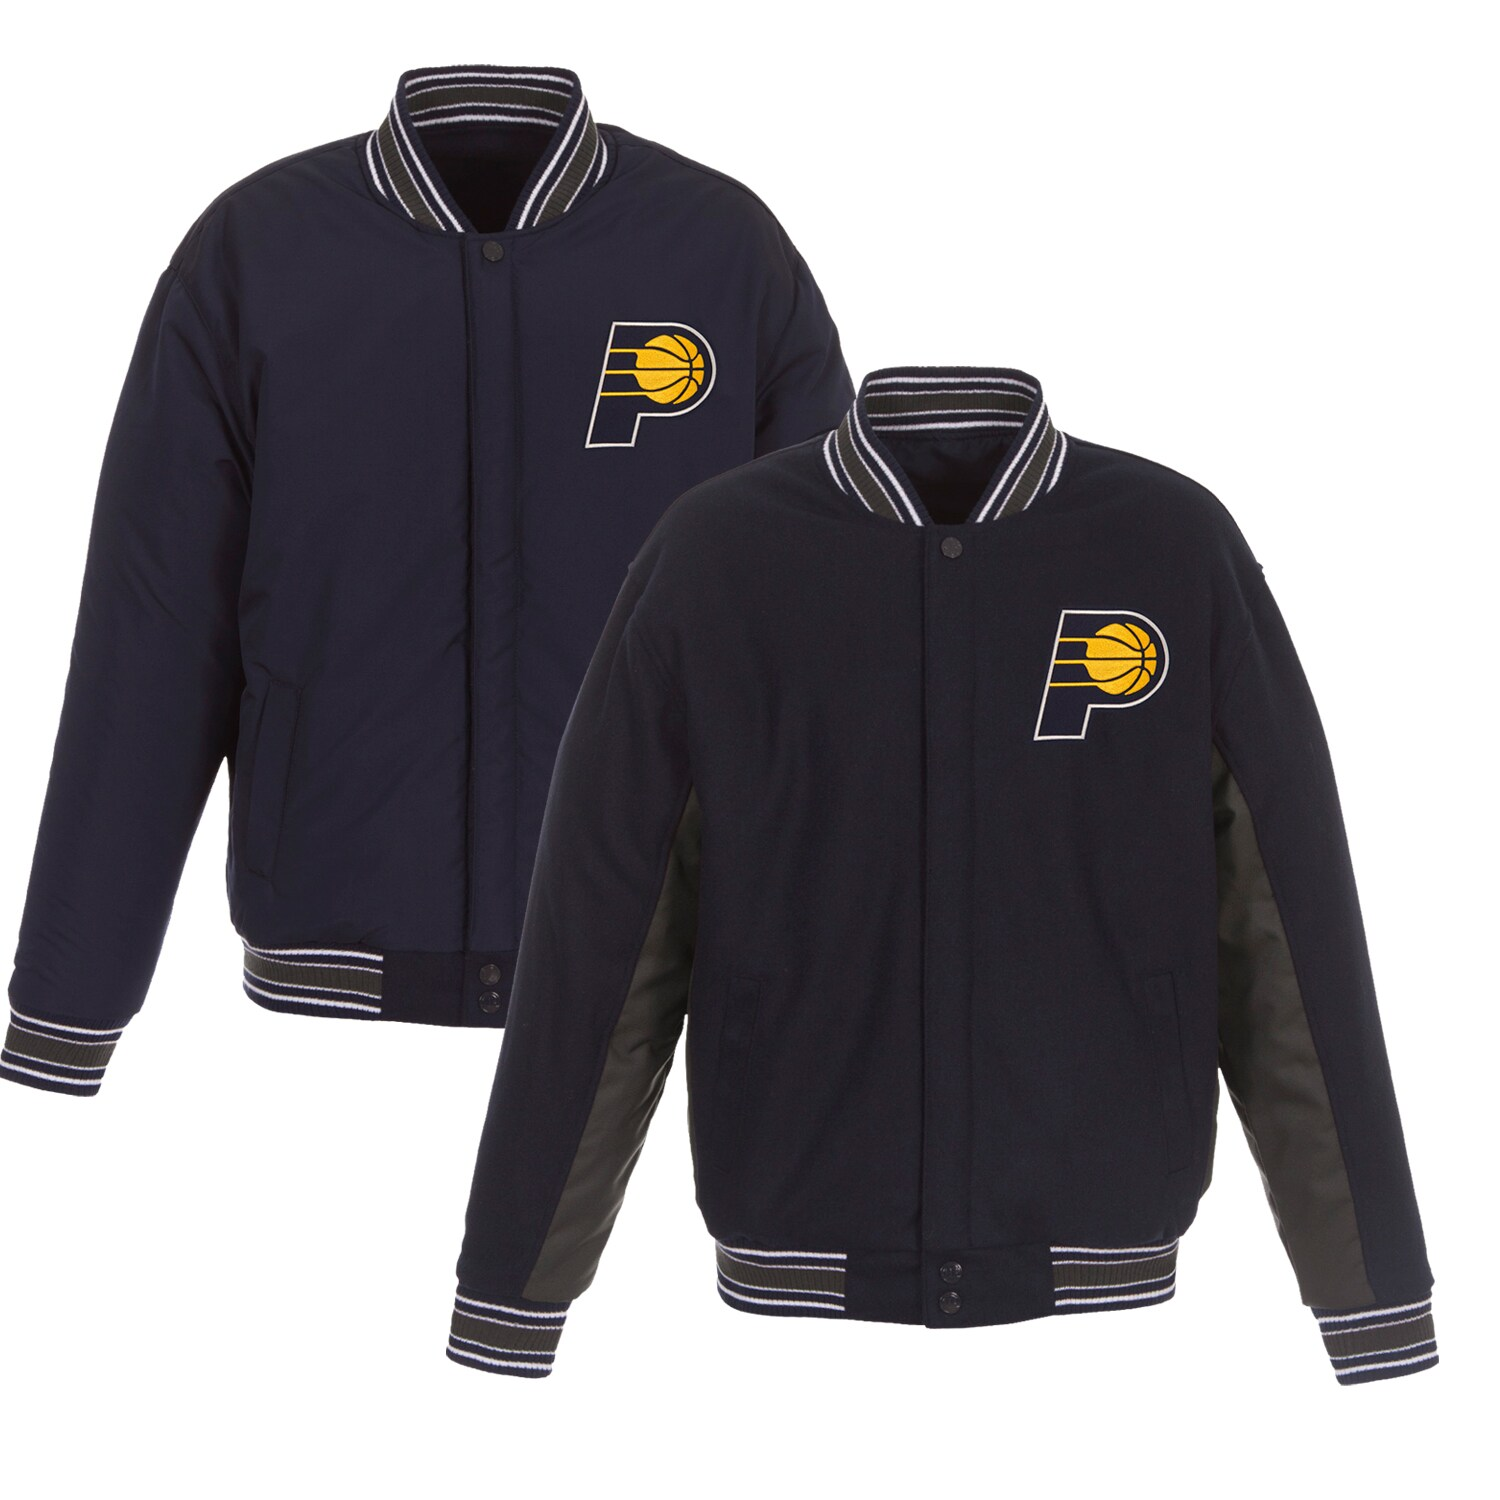 Indiana Pacers JH Design Reversible Wool & Poly-Twill Full-Snap Jacket - Navy/Charcoal